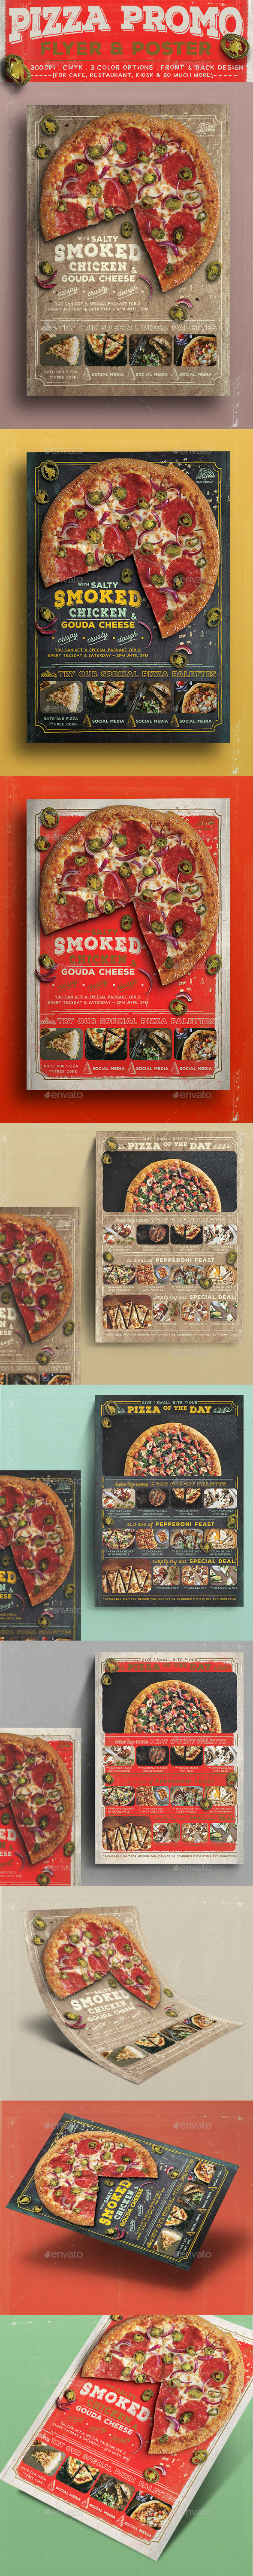 GraphicRiver Pizza Promo Flyer 11944515